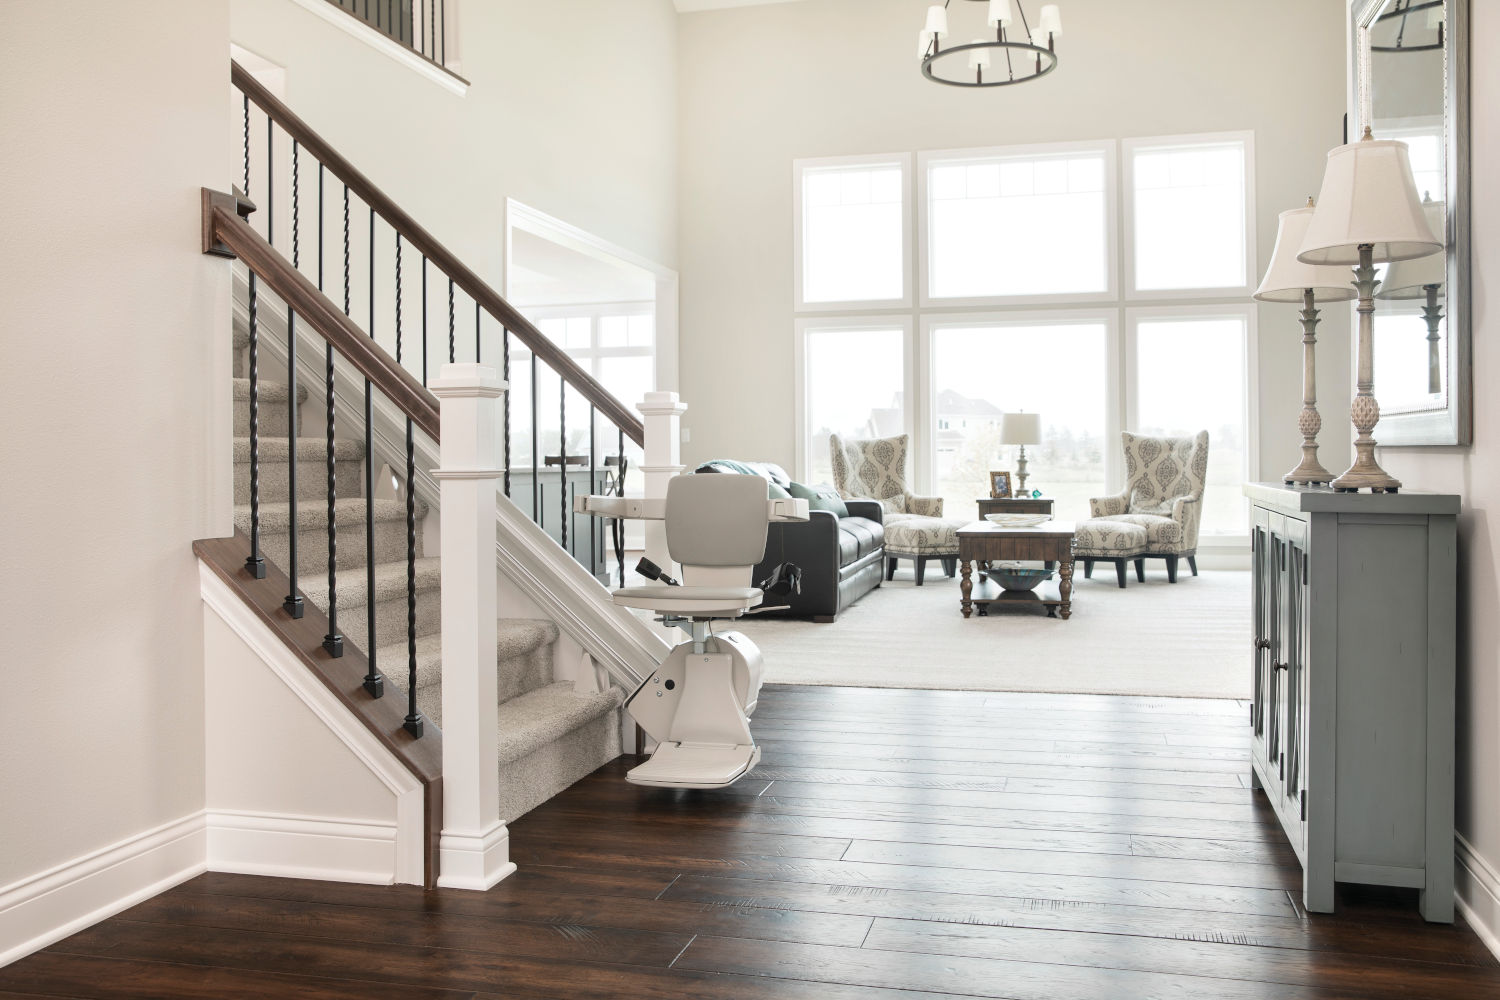 Why buy a stairlift from Love Stairlifts?